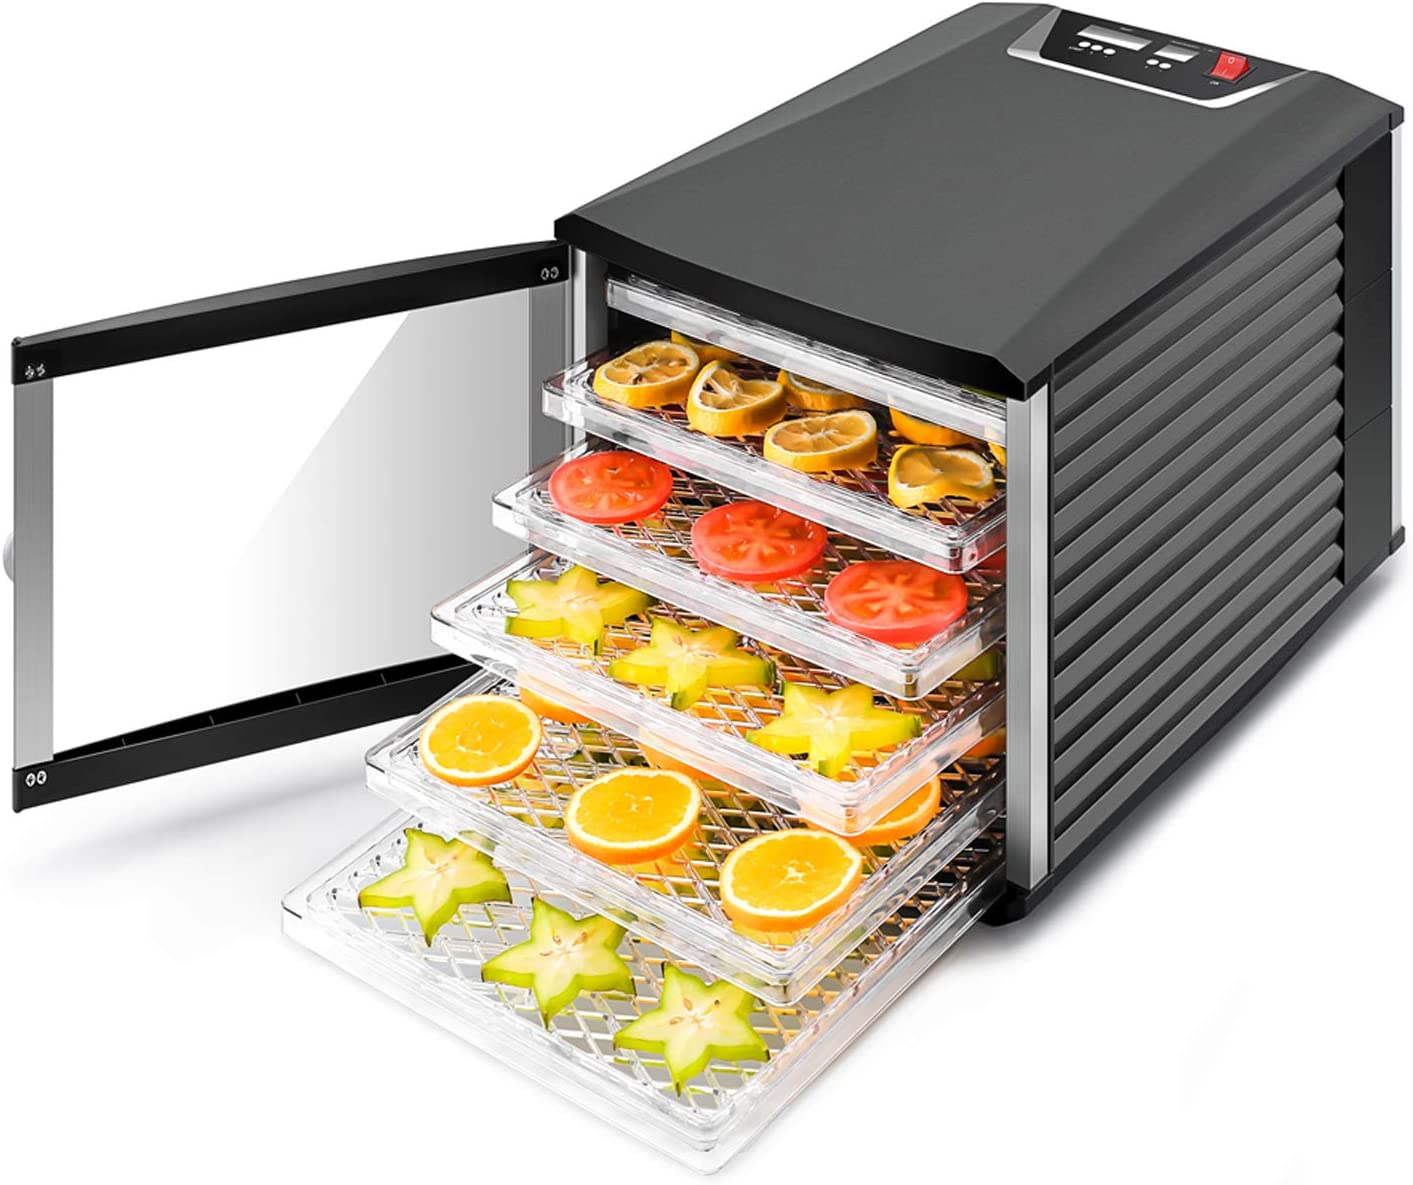 JAYETEC Professional Food Dehydrator, 6-Trays with Digital Thermostat and Timer, fruit, vegetables, meat, flowers, herbs, beef dryer,transparent front door black including 2 pcs non-stick sheets